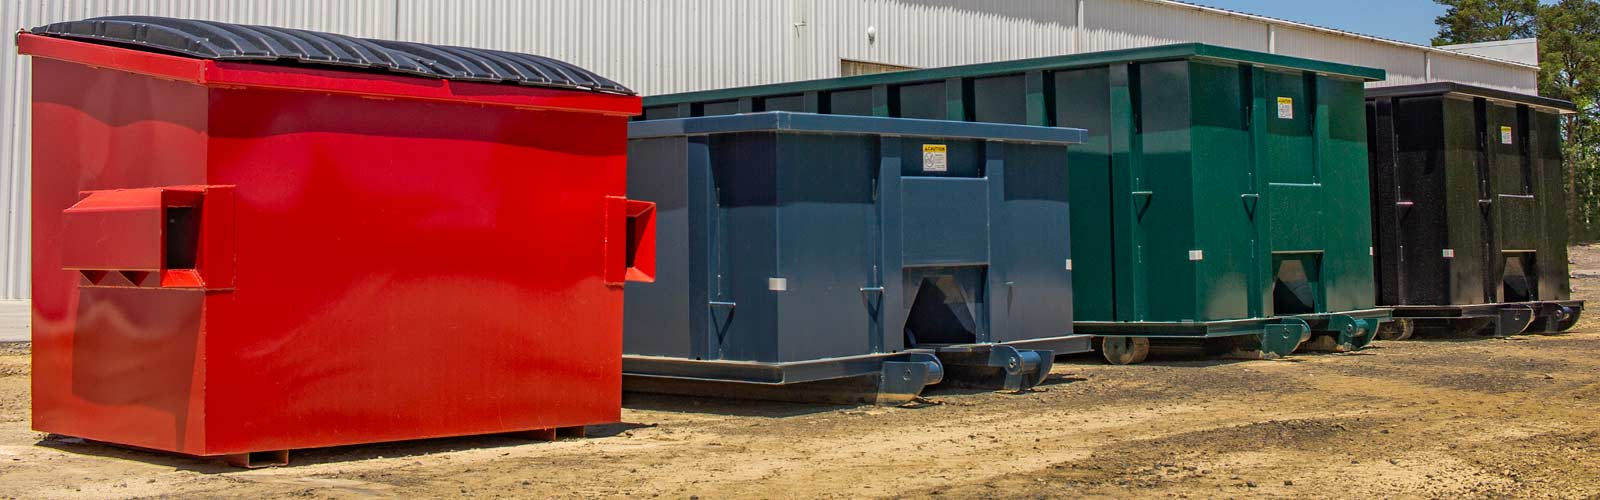 The lineup of WorkForce small can and rolloff containers